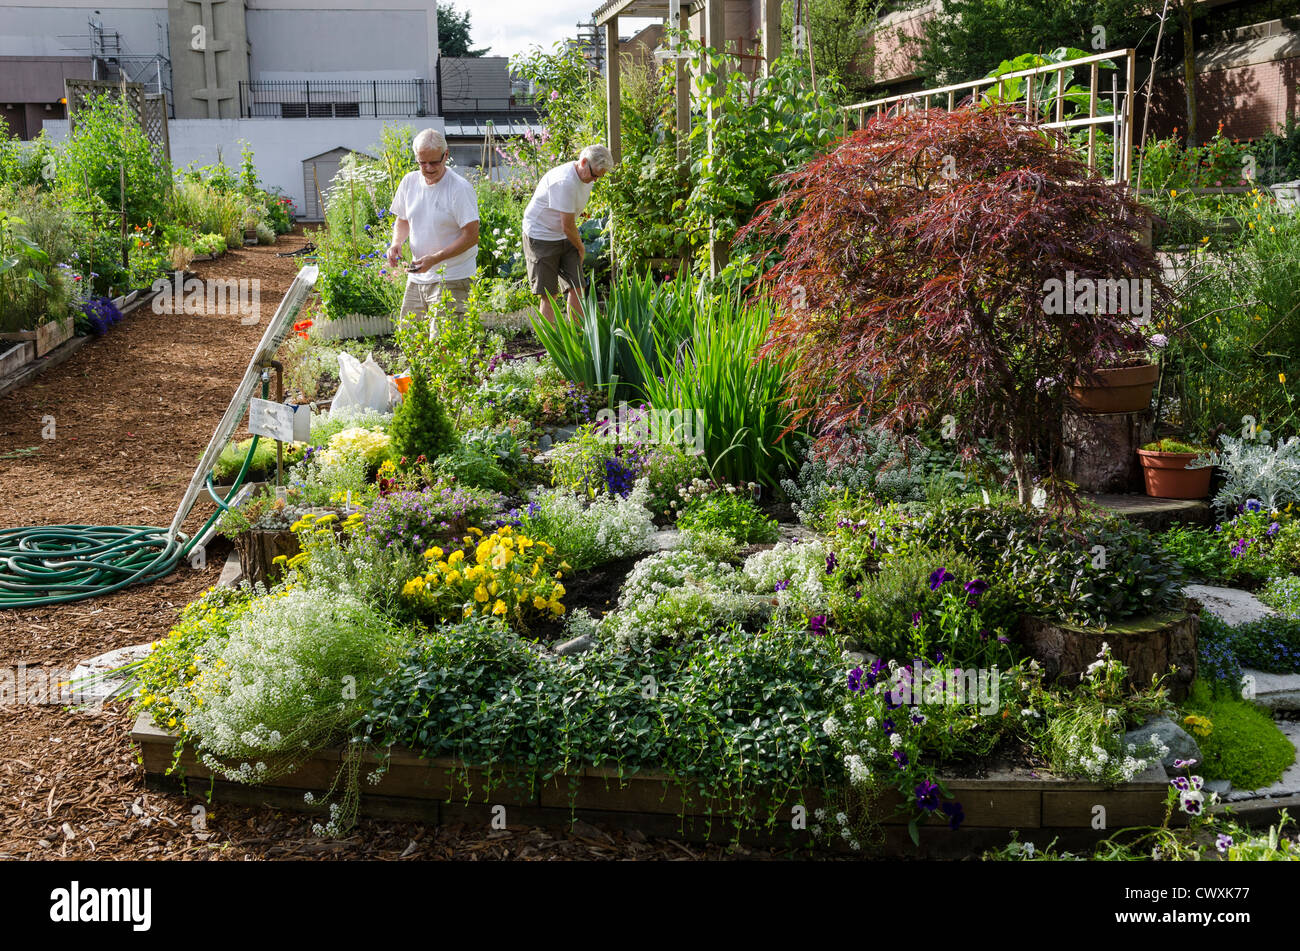 urban garden gardening working in the community garden in davie stock photo royalty free. Black Bedroom Furniture Sets. Home Design Ideas